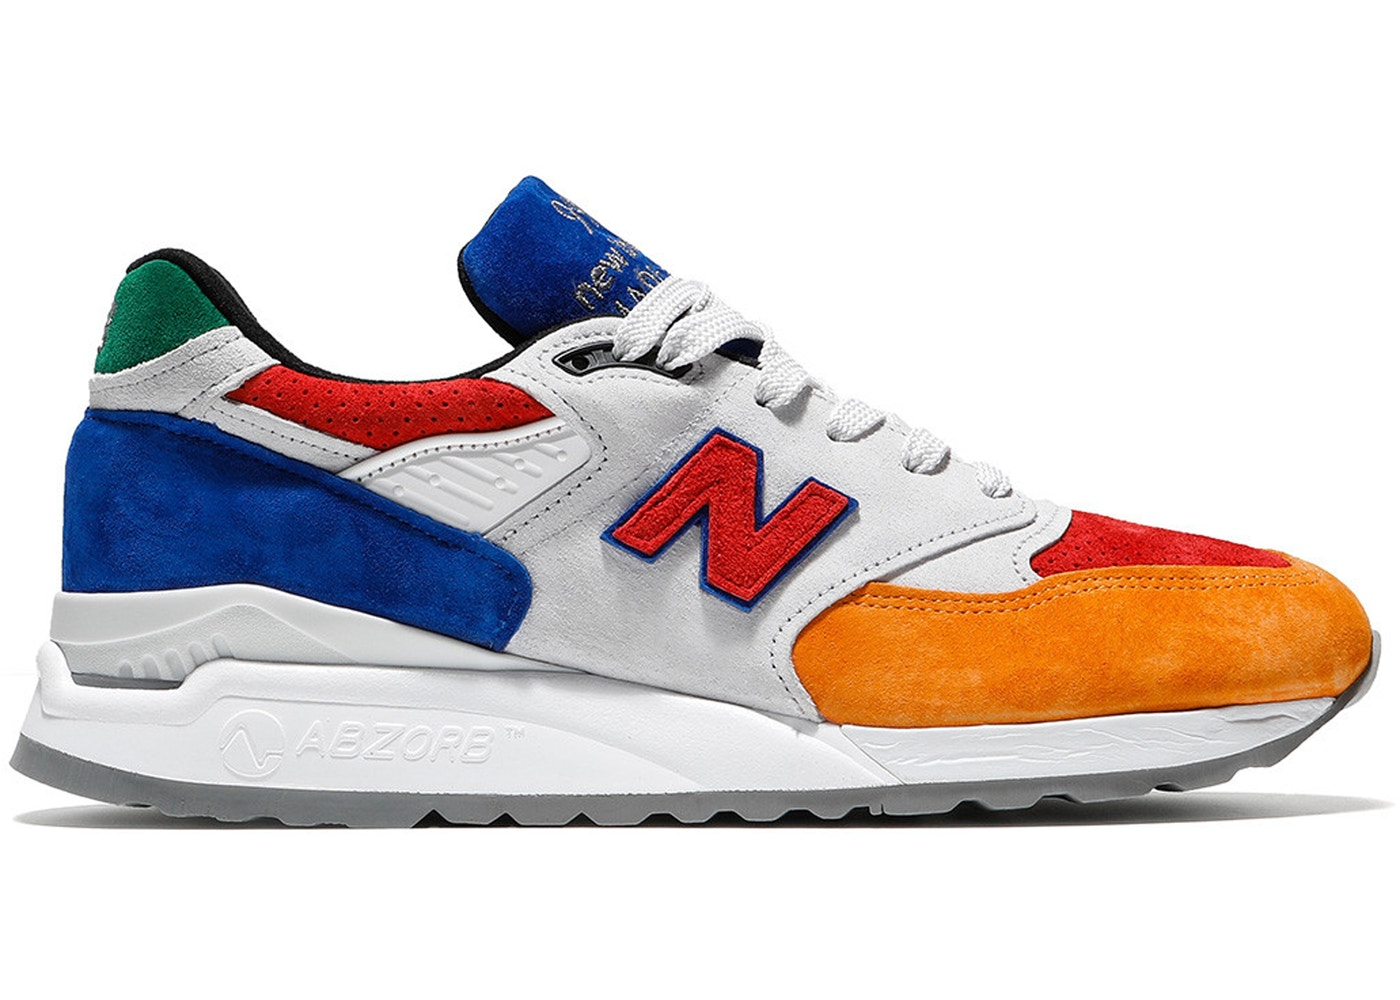 sports shoes 88a43 edc29 New Balance 998 Bodega Mass Transit